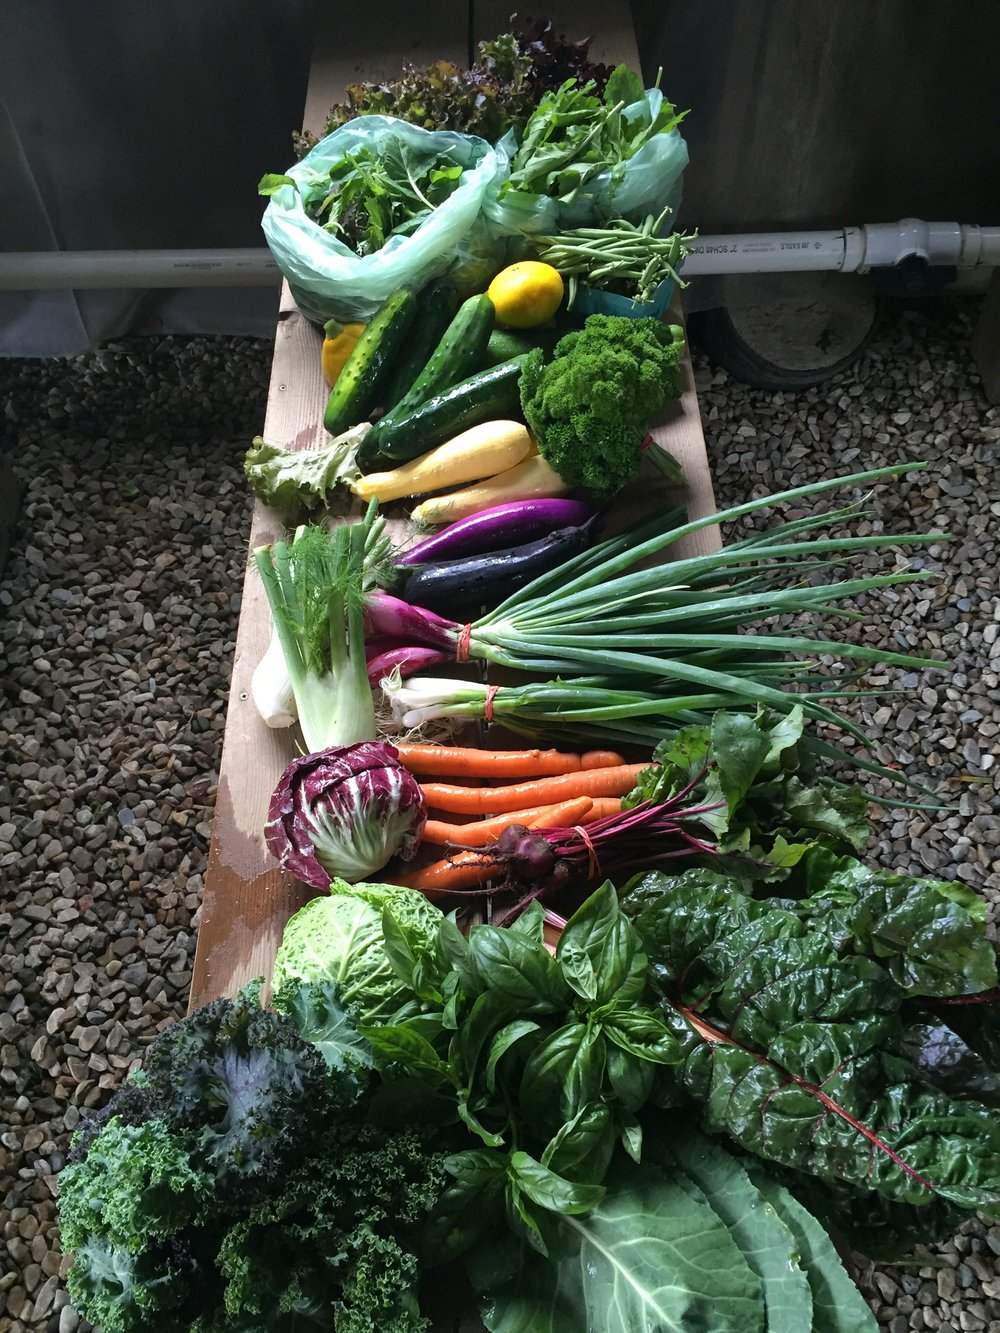 Here is an example of one of our more abundant shares in July! Of what is featured on the table, on-farm members u-picked the beans, parsley and basil, the rest was pre-harvested. Members were also given the choice between chard, kale and collards as well as the choice between fresh red onions and scallions, and choice between carrots and beets. So the actual share people walked away with included 11 crops total. We like to give our members options when possible!